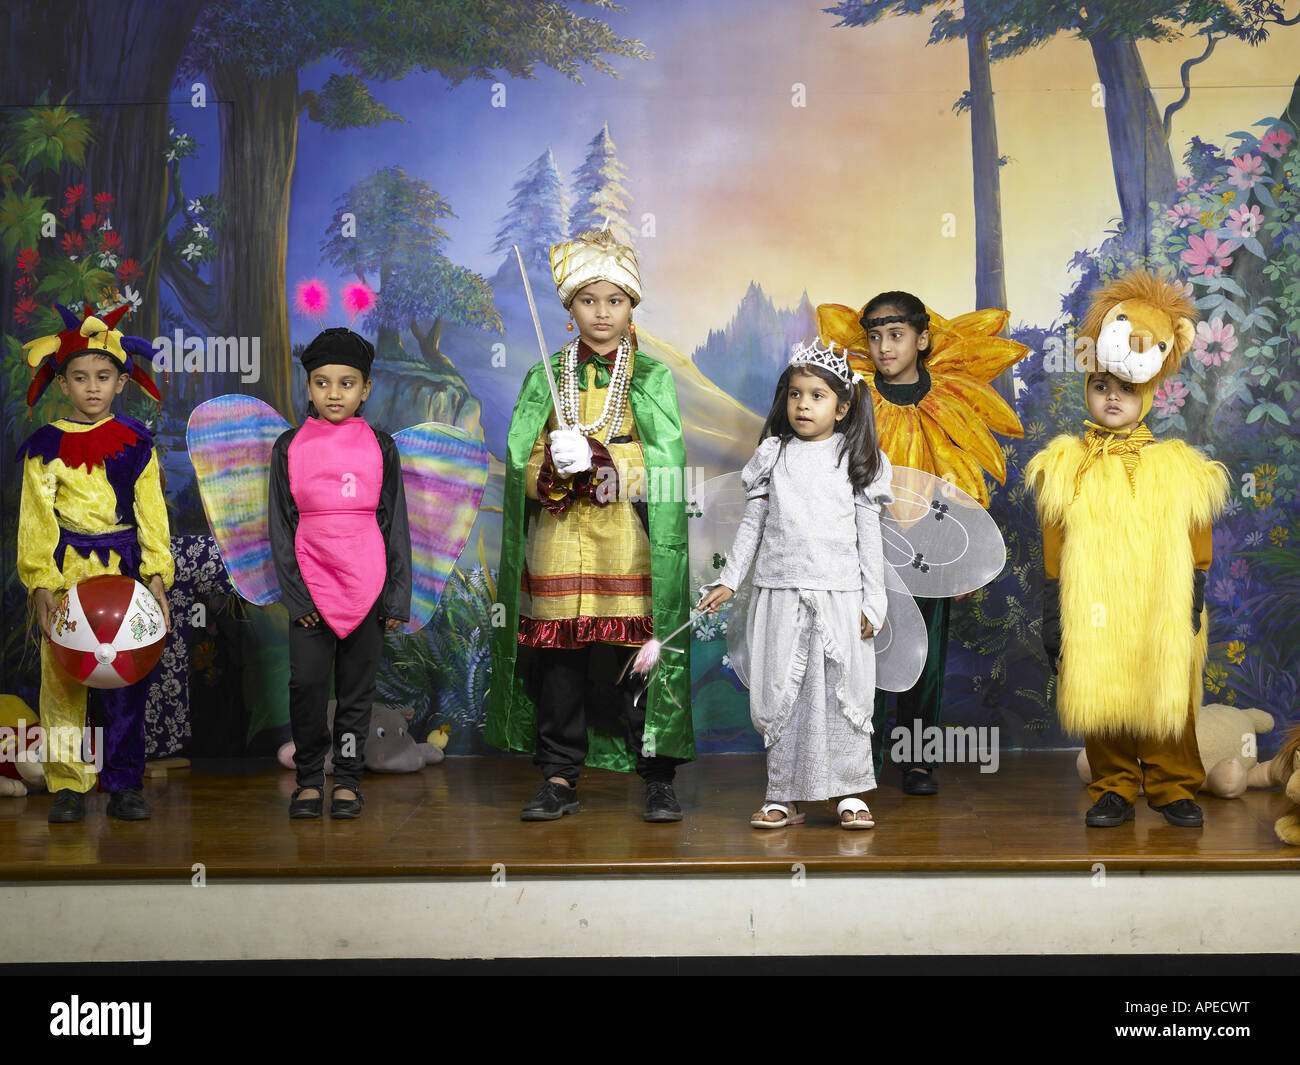 Cartoon Characters 80s Fancy Dress : South indian boy fancy dress stock photos & south indian boy fancy